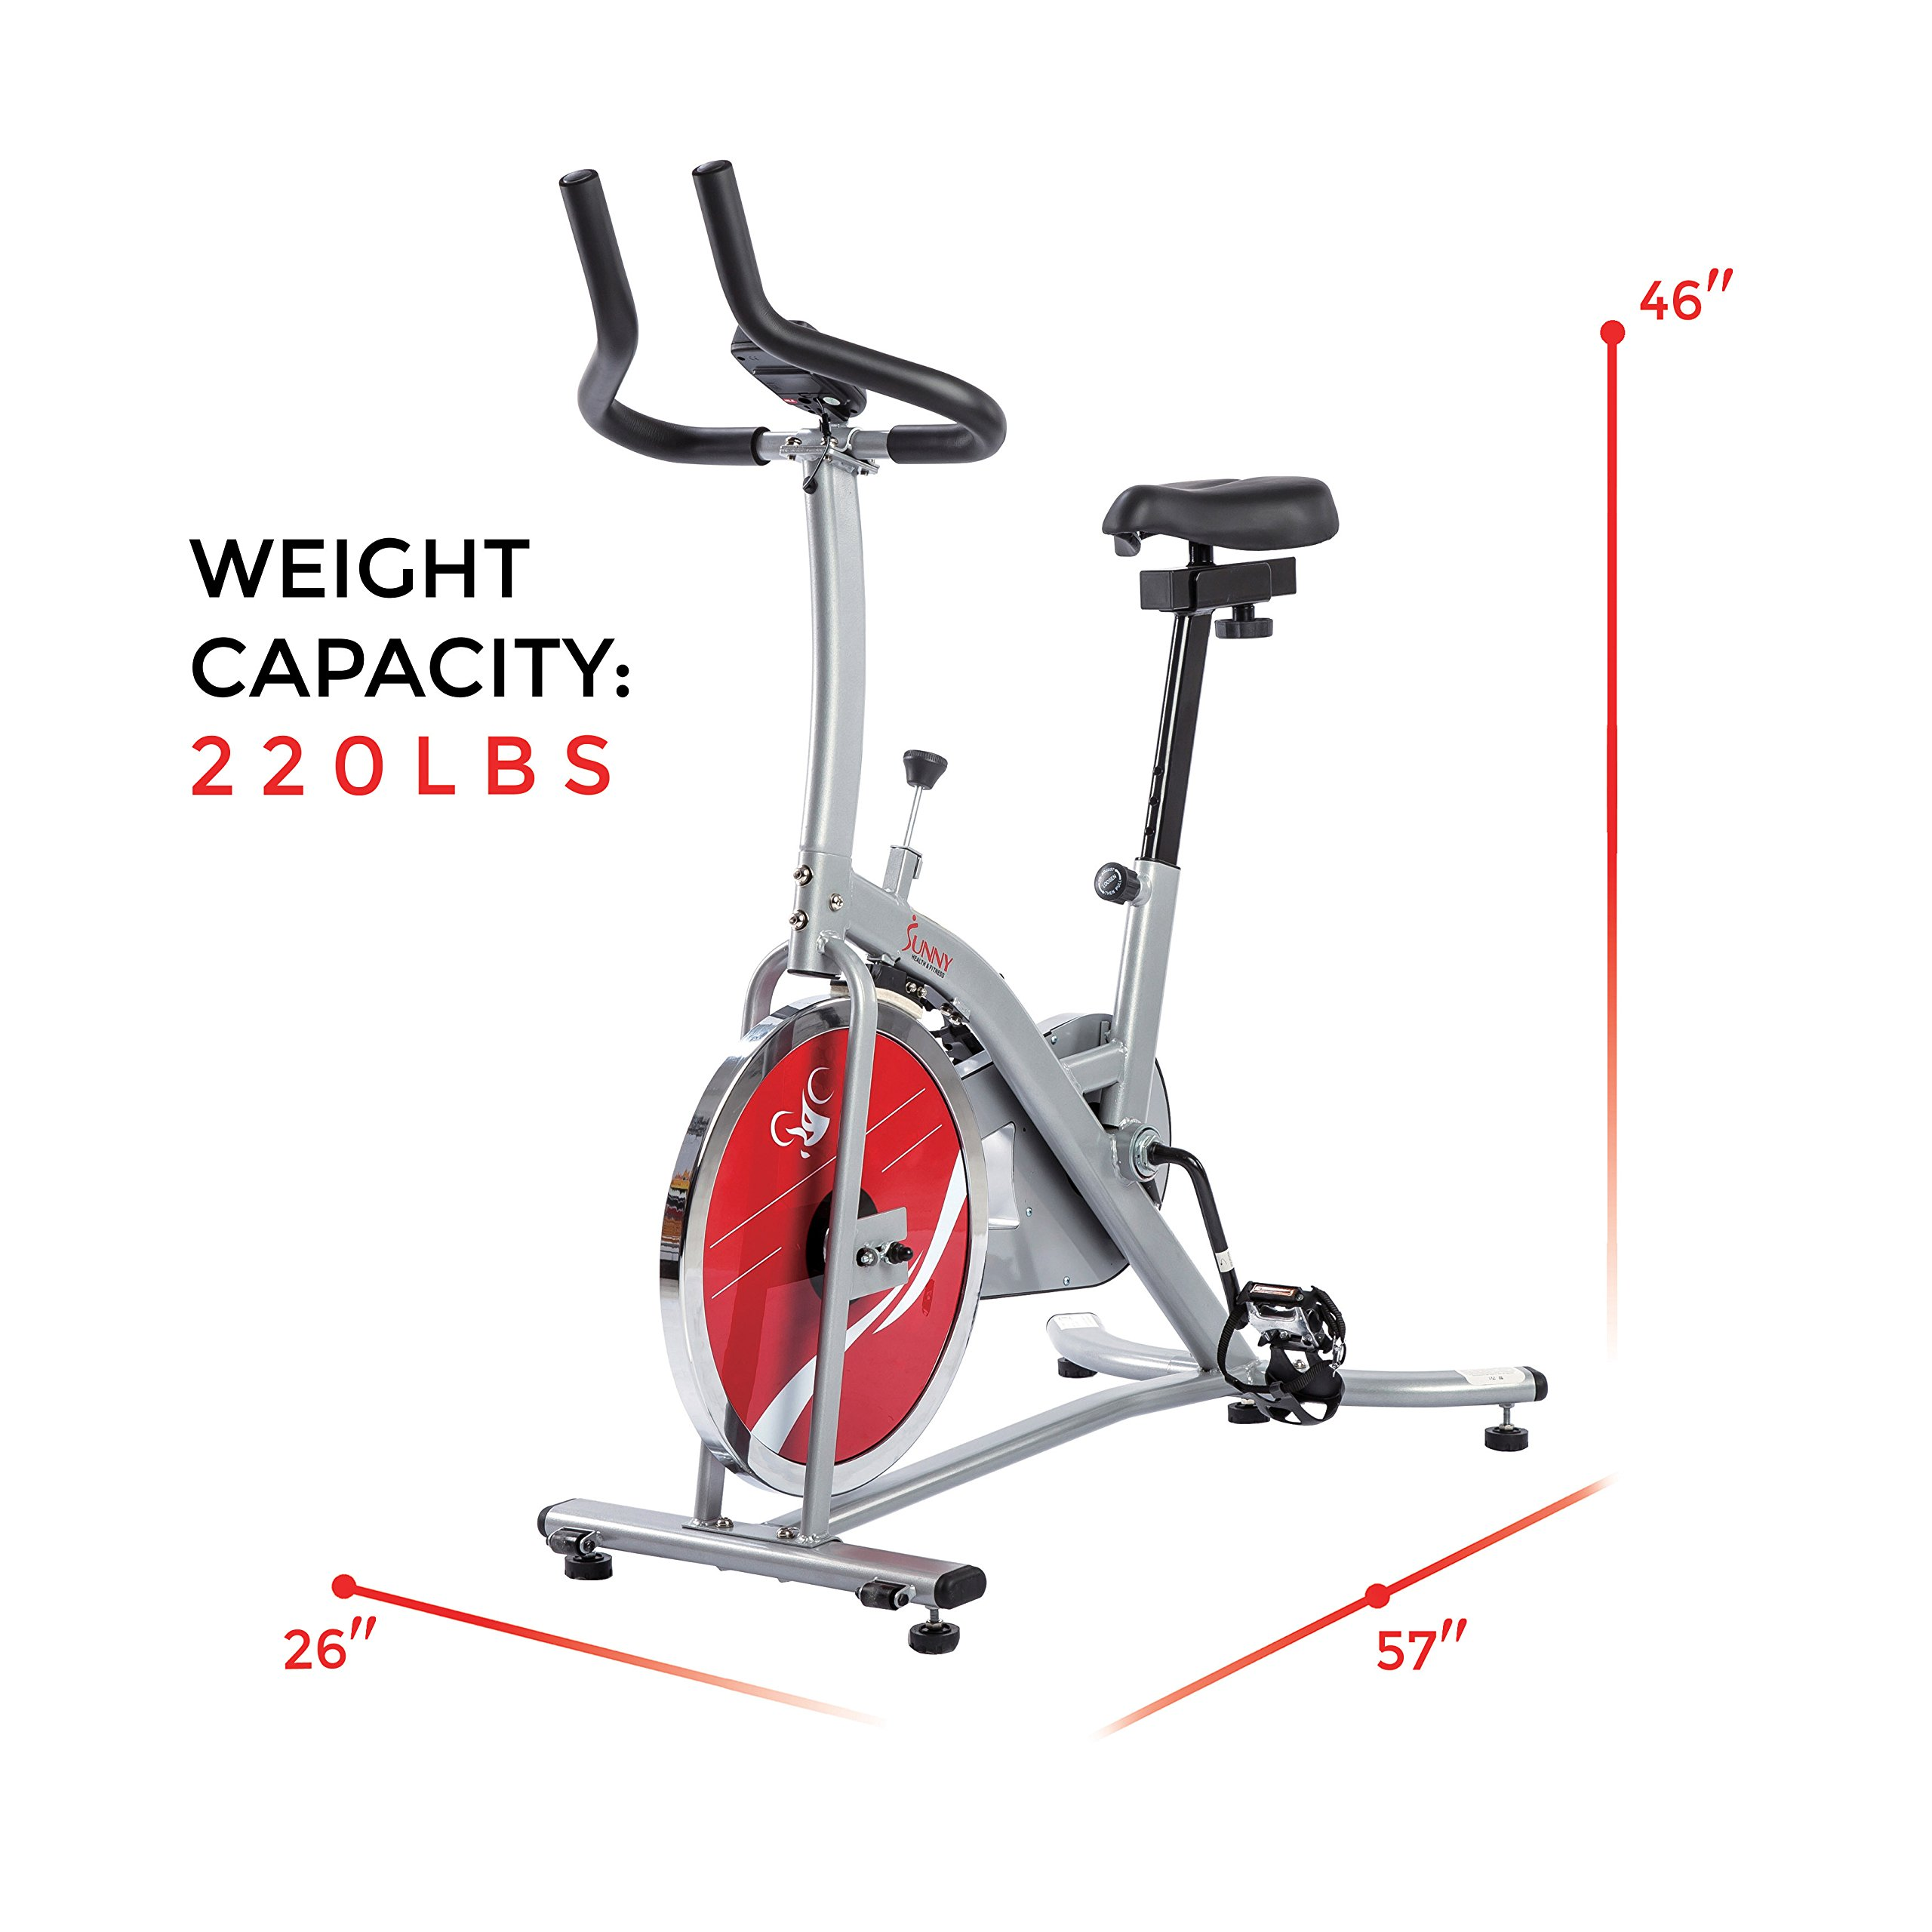 Sunny Health & Fitness Indoor Cycling Exercise Stationary Bike with Monitor and Flywheel Bike - SF-B1203 by Sunny Health & Fitness (Image #13)